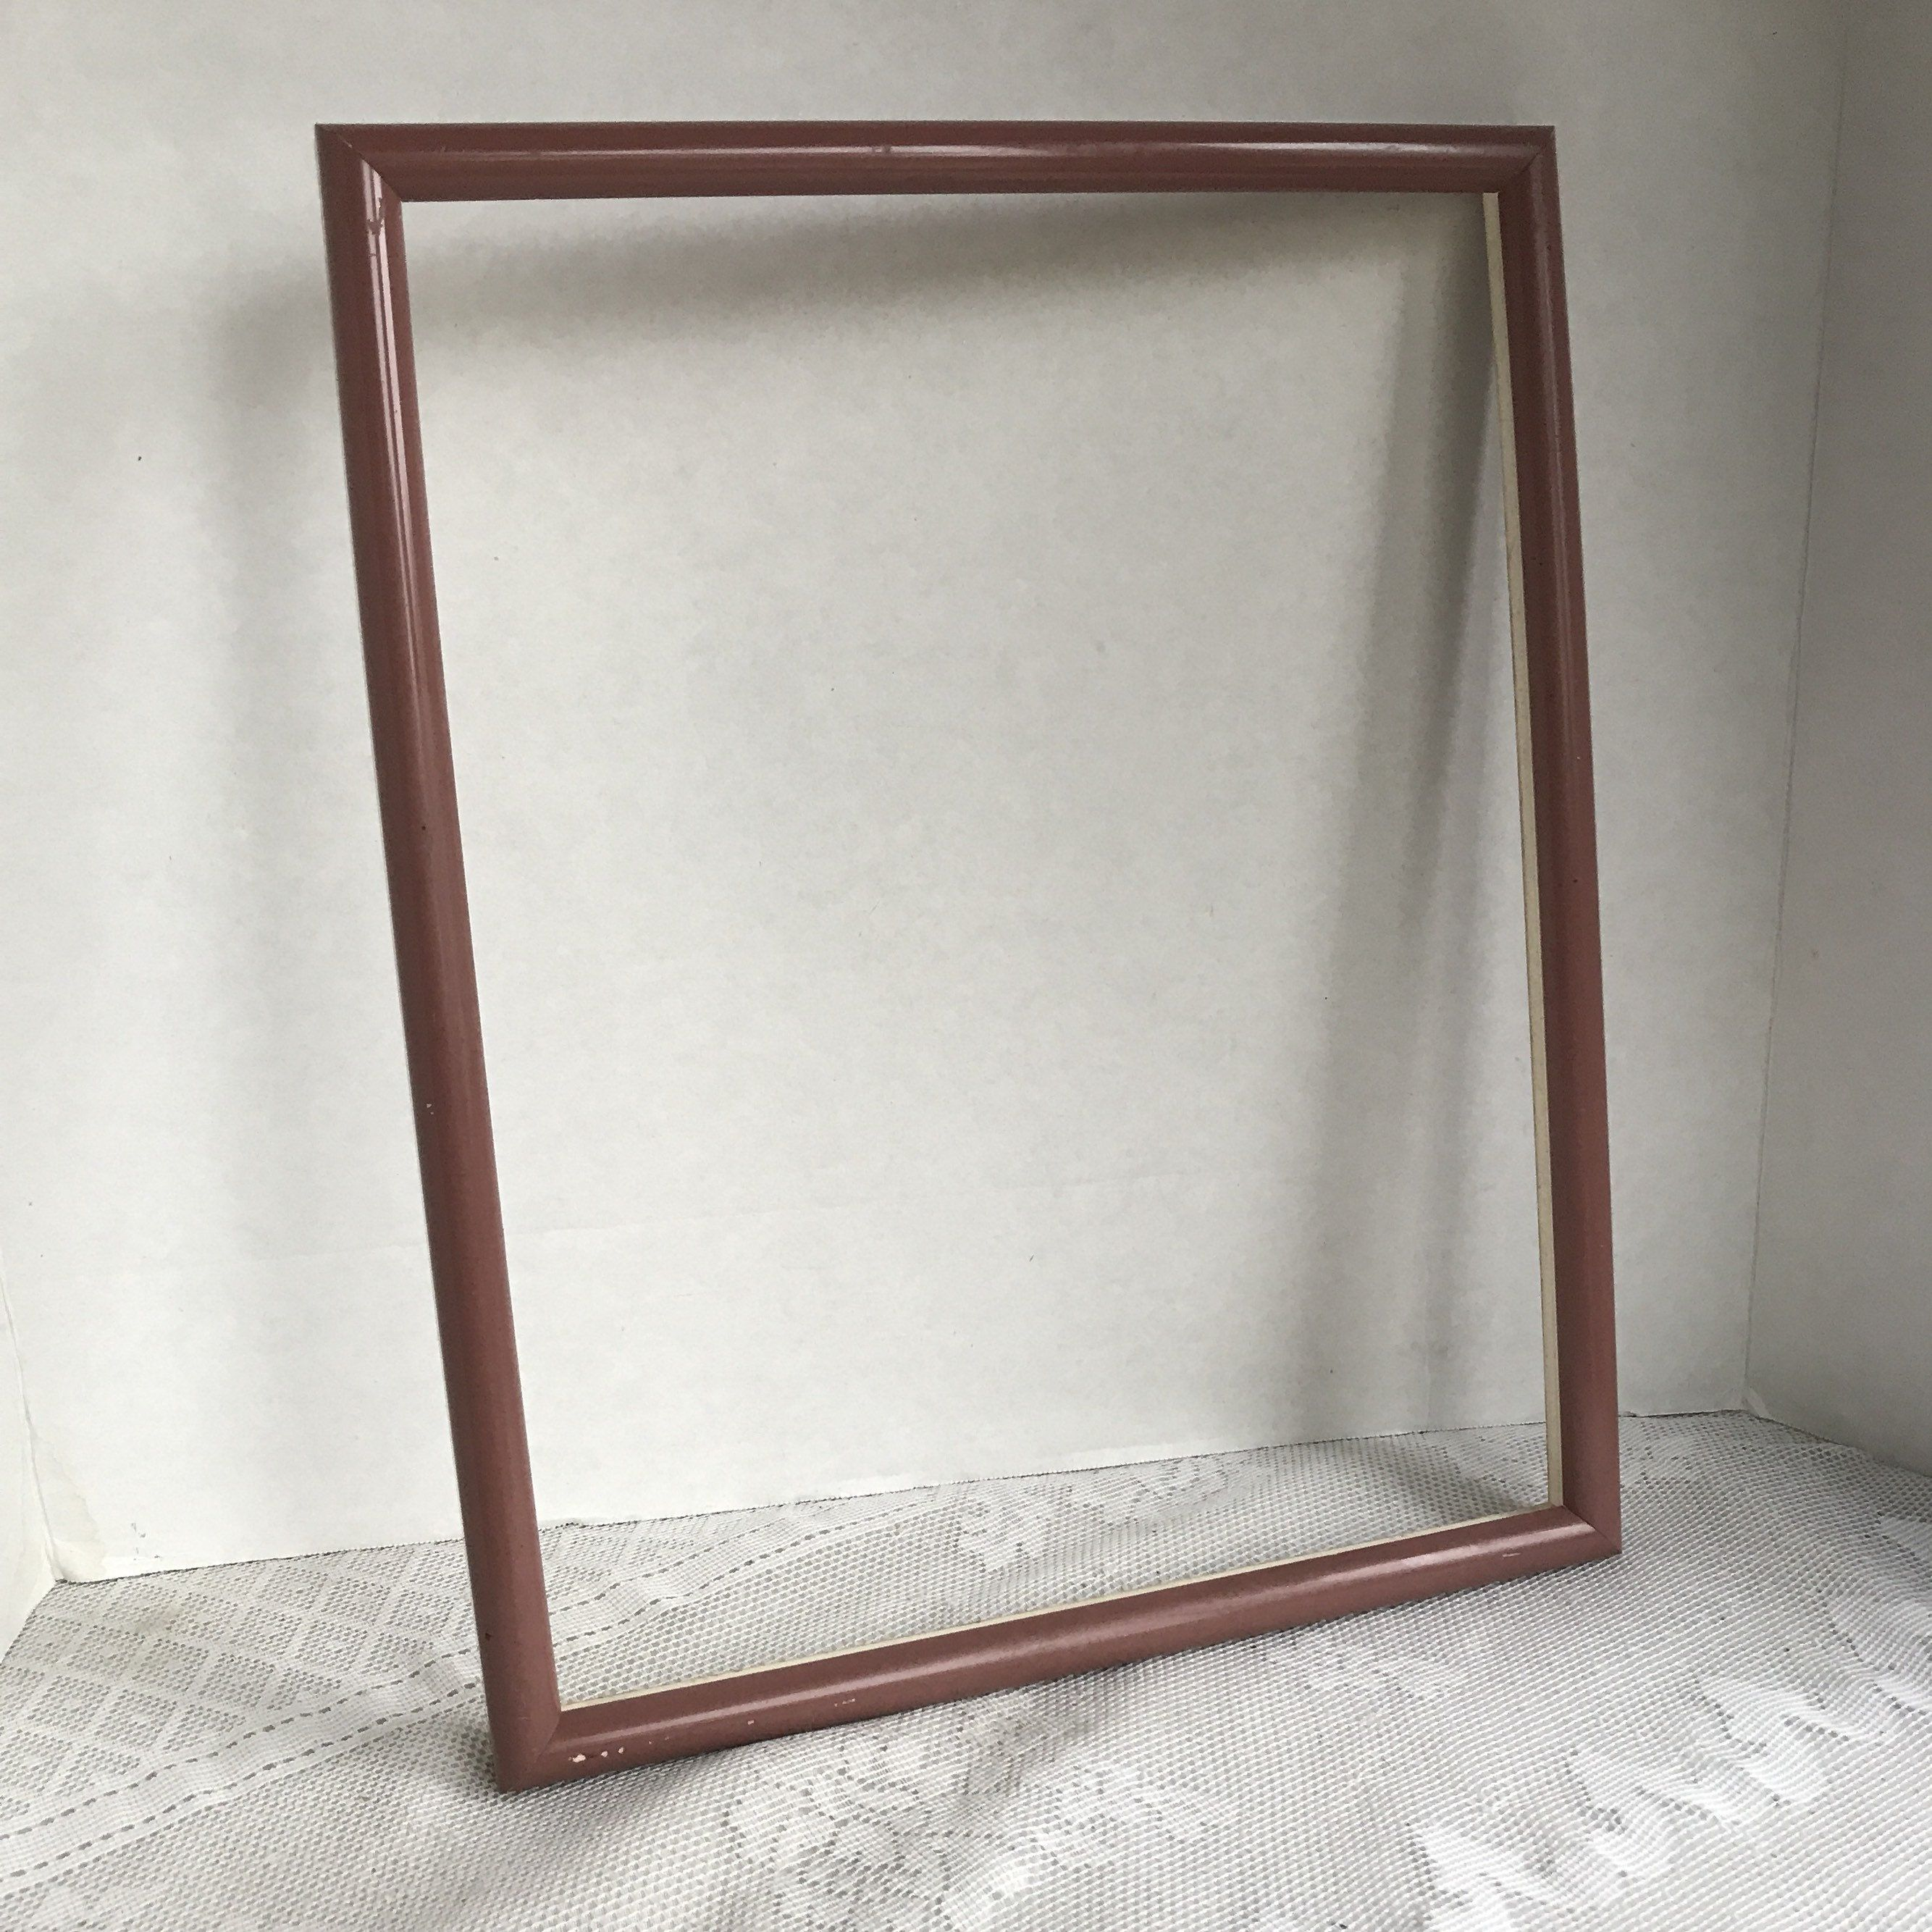 Vintage Pressed Wood Picture Frame Pink Wooden 11 X 14 Inch Frame Wood Picture Frames Picture On Wood Picture Frames